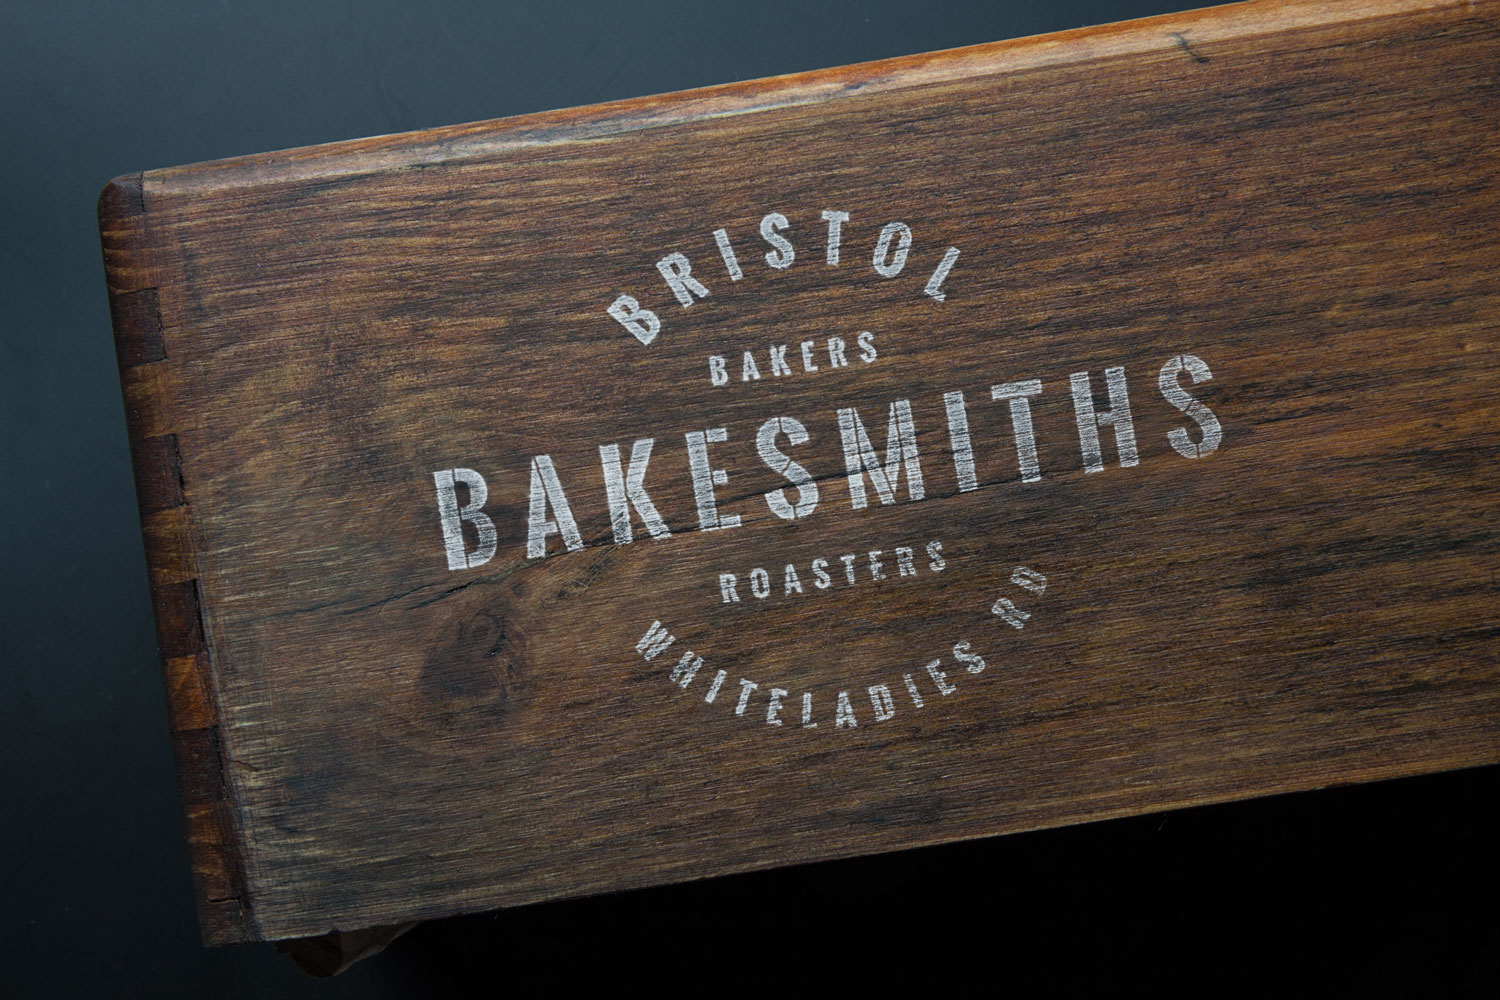 Bakesmiths-Coffee-Shop-Branding-Logo-Crate-by-Get-it-Sorted.jpg